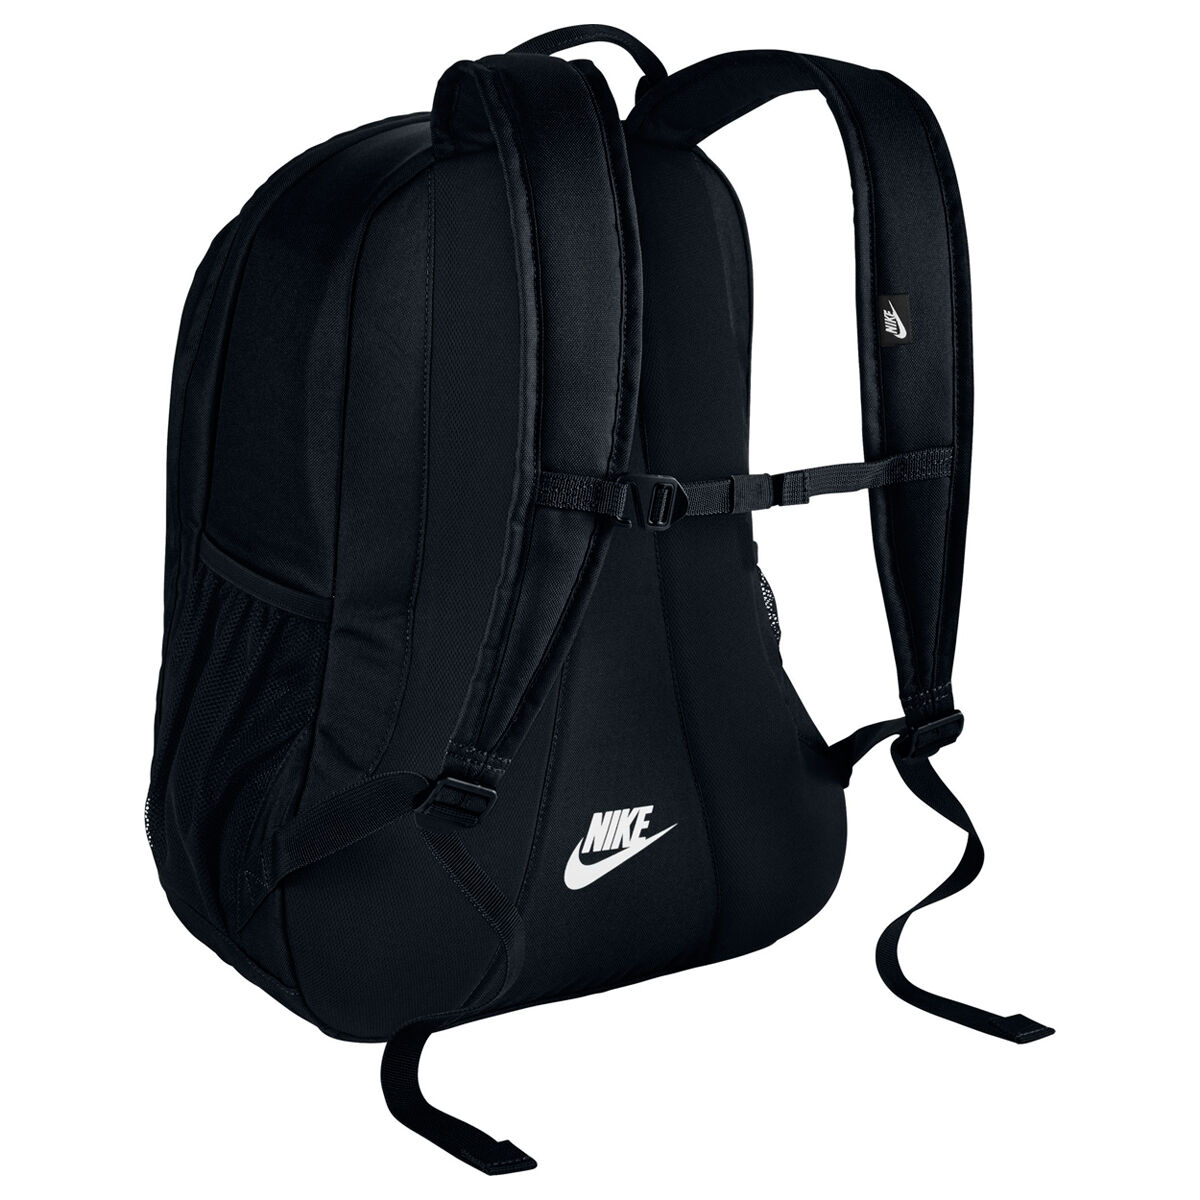 the Lowest price Nike Court Tech 2.0 Backpacks Black (Men